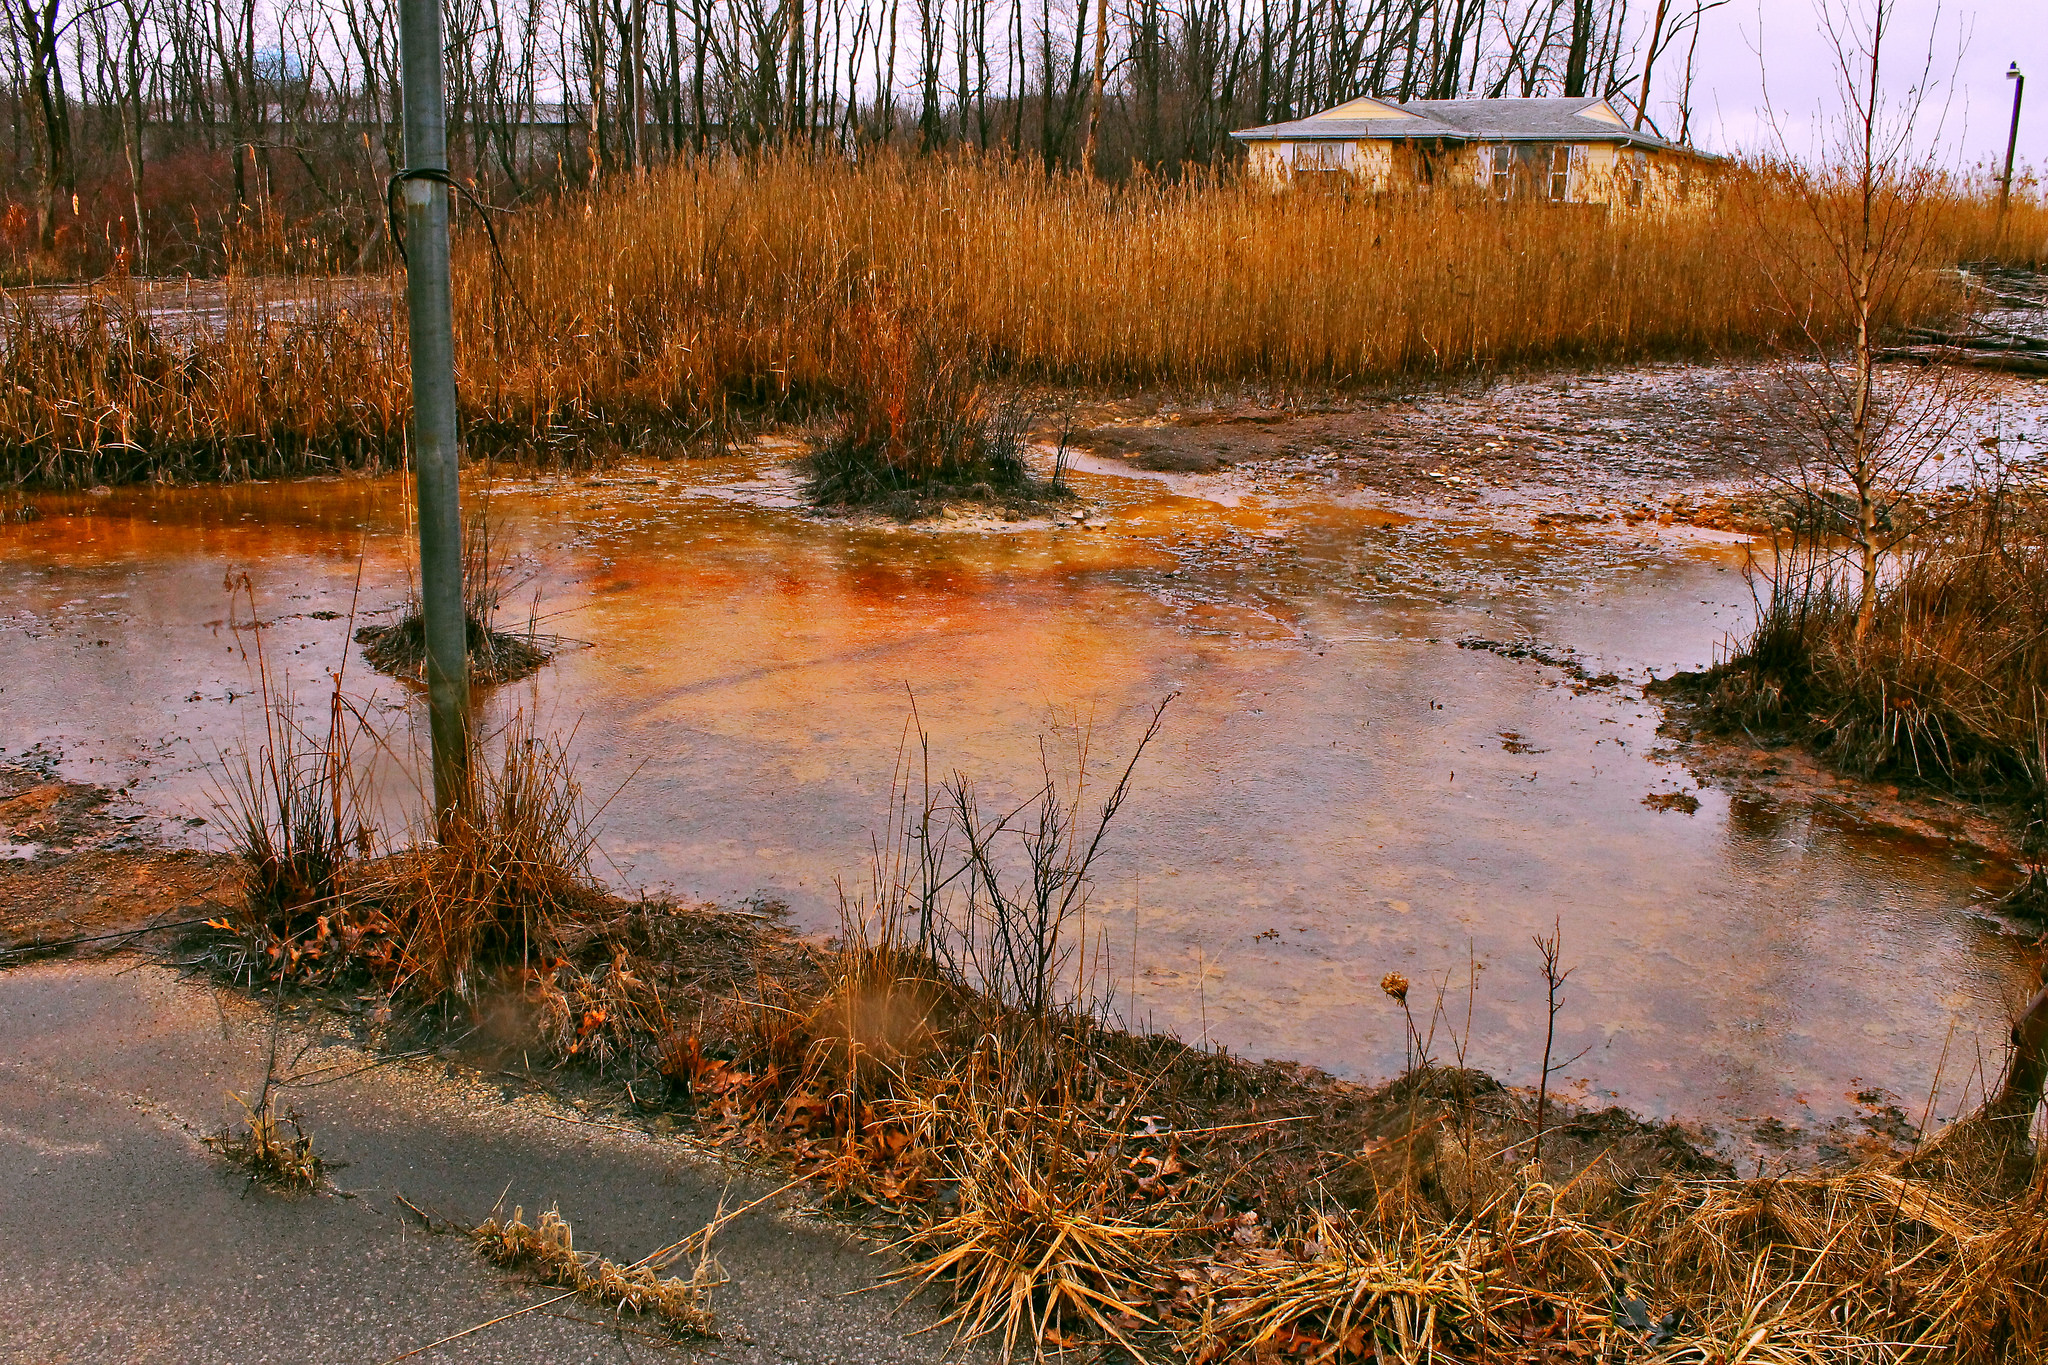 How the Pollution of Our Lakes, Rivers and Streams Harms Our Ecosystems